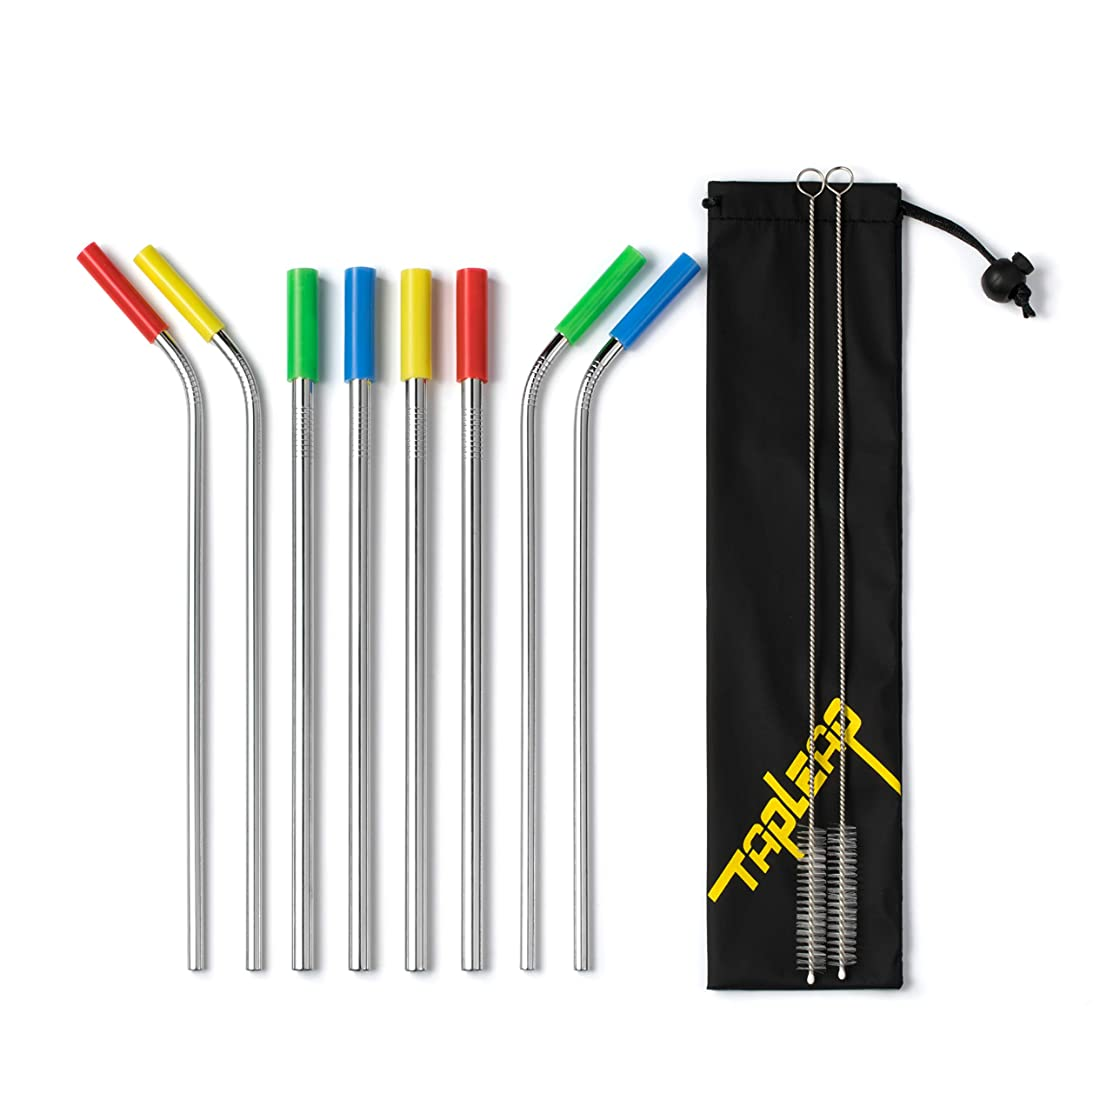 Reusable Metal Straws for Drinks With Silicone Tips, Carrying Bag and Brush (4 Straight 0.31